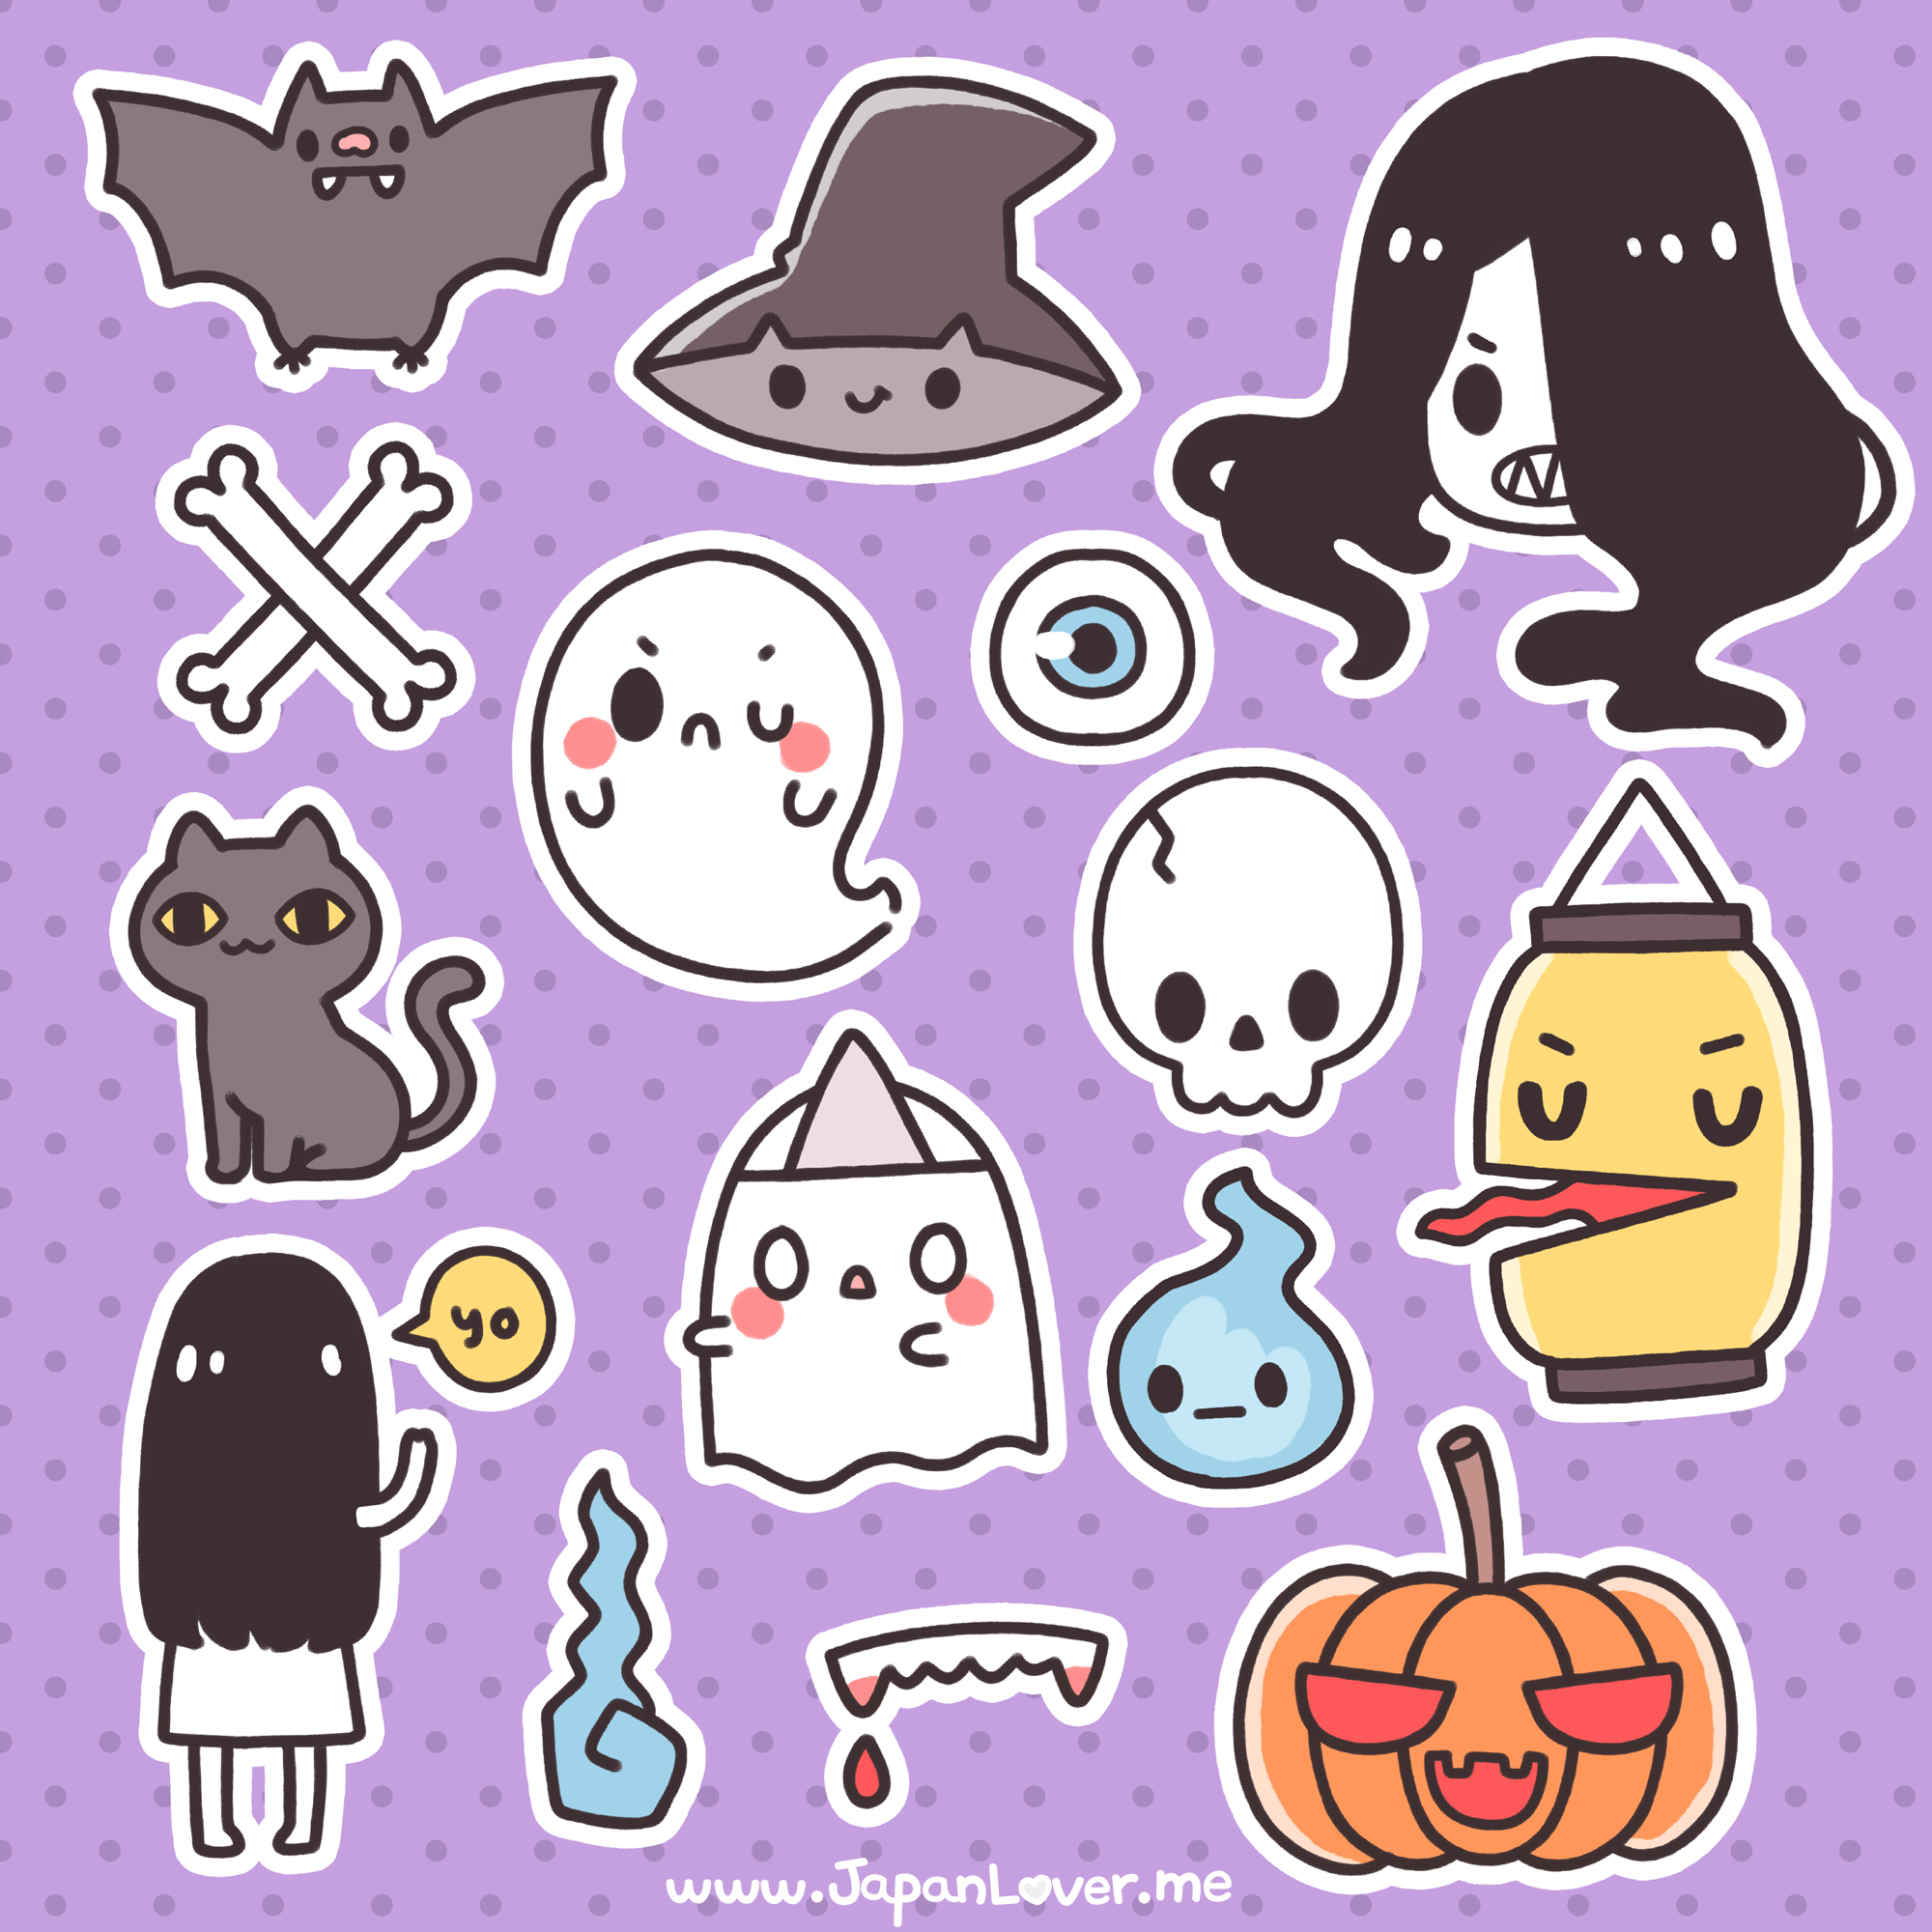 Printable Spooky Kawaii Stickers For Halloween! | Kawaii Japan Lover Me - Free Printable Kawaii Stickers